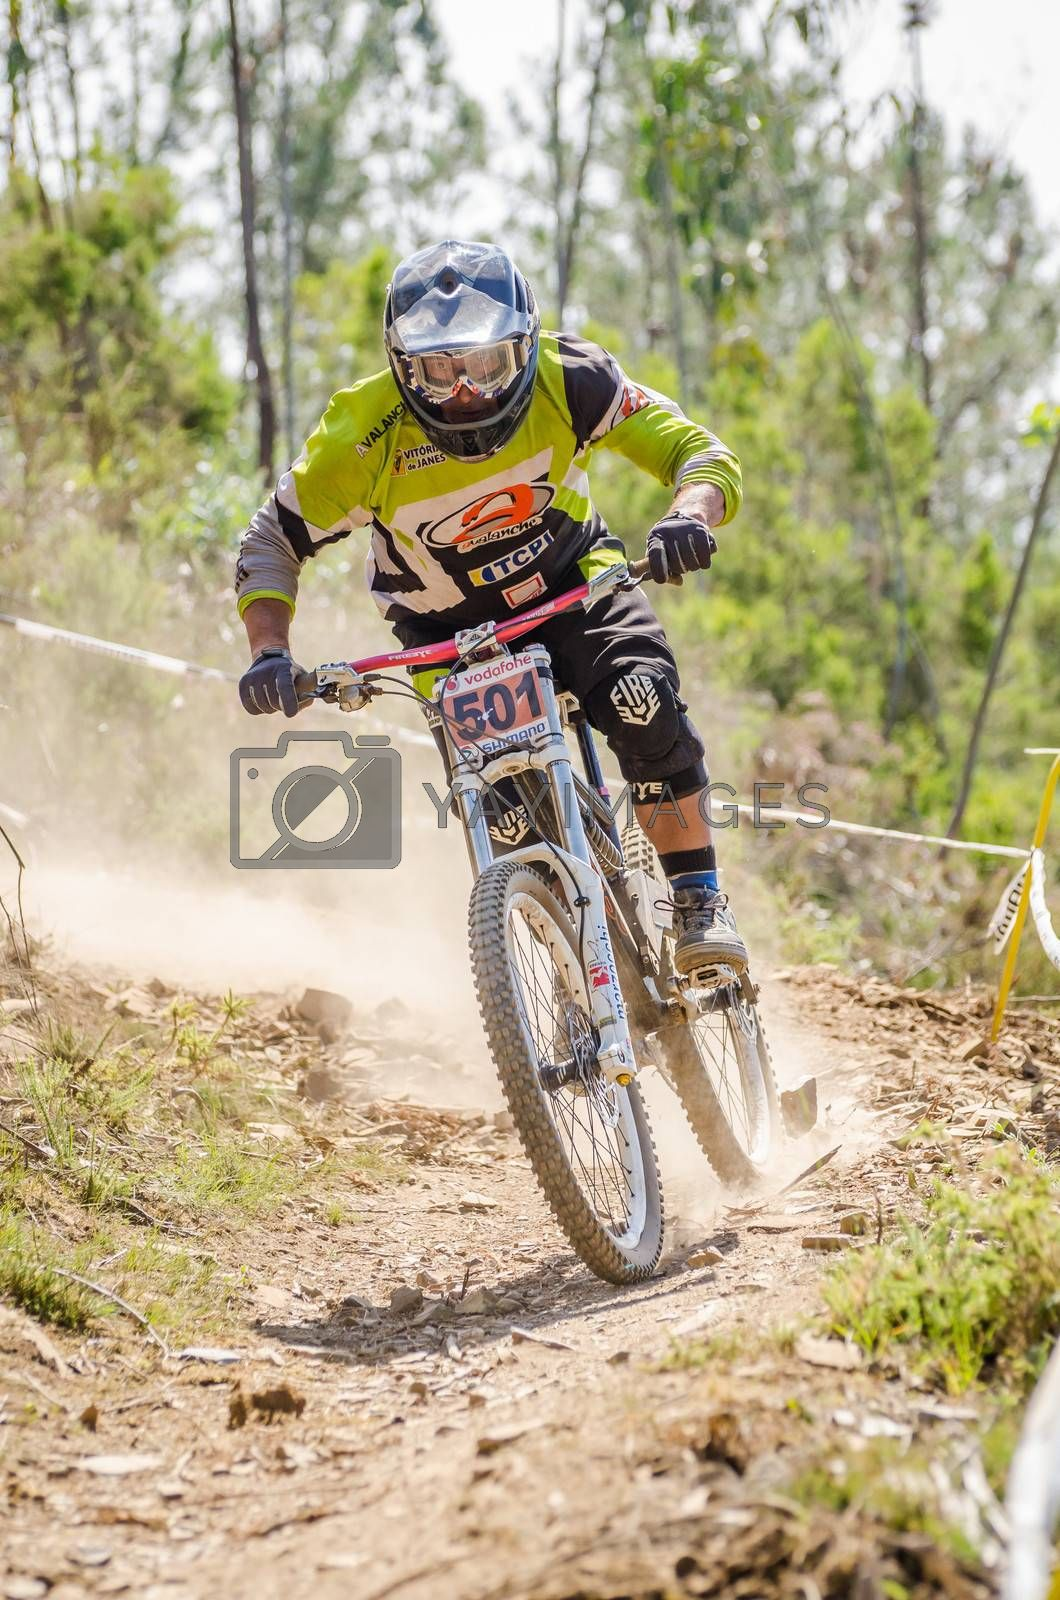 GOIS, PORTUGAL - JUNE 23: Jose Salgueiro during the 4th Stage of the Taca de Portugal Downhill Vodafone on june 23, 2013 in Gois, Portugal.